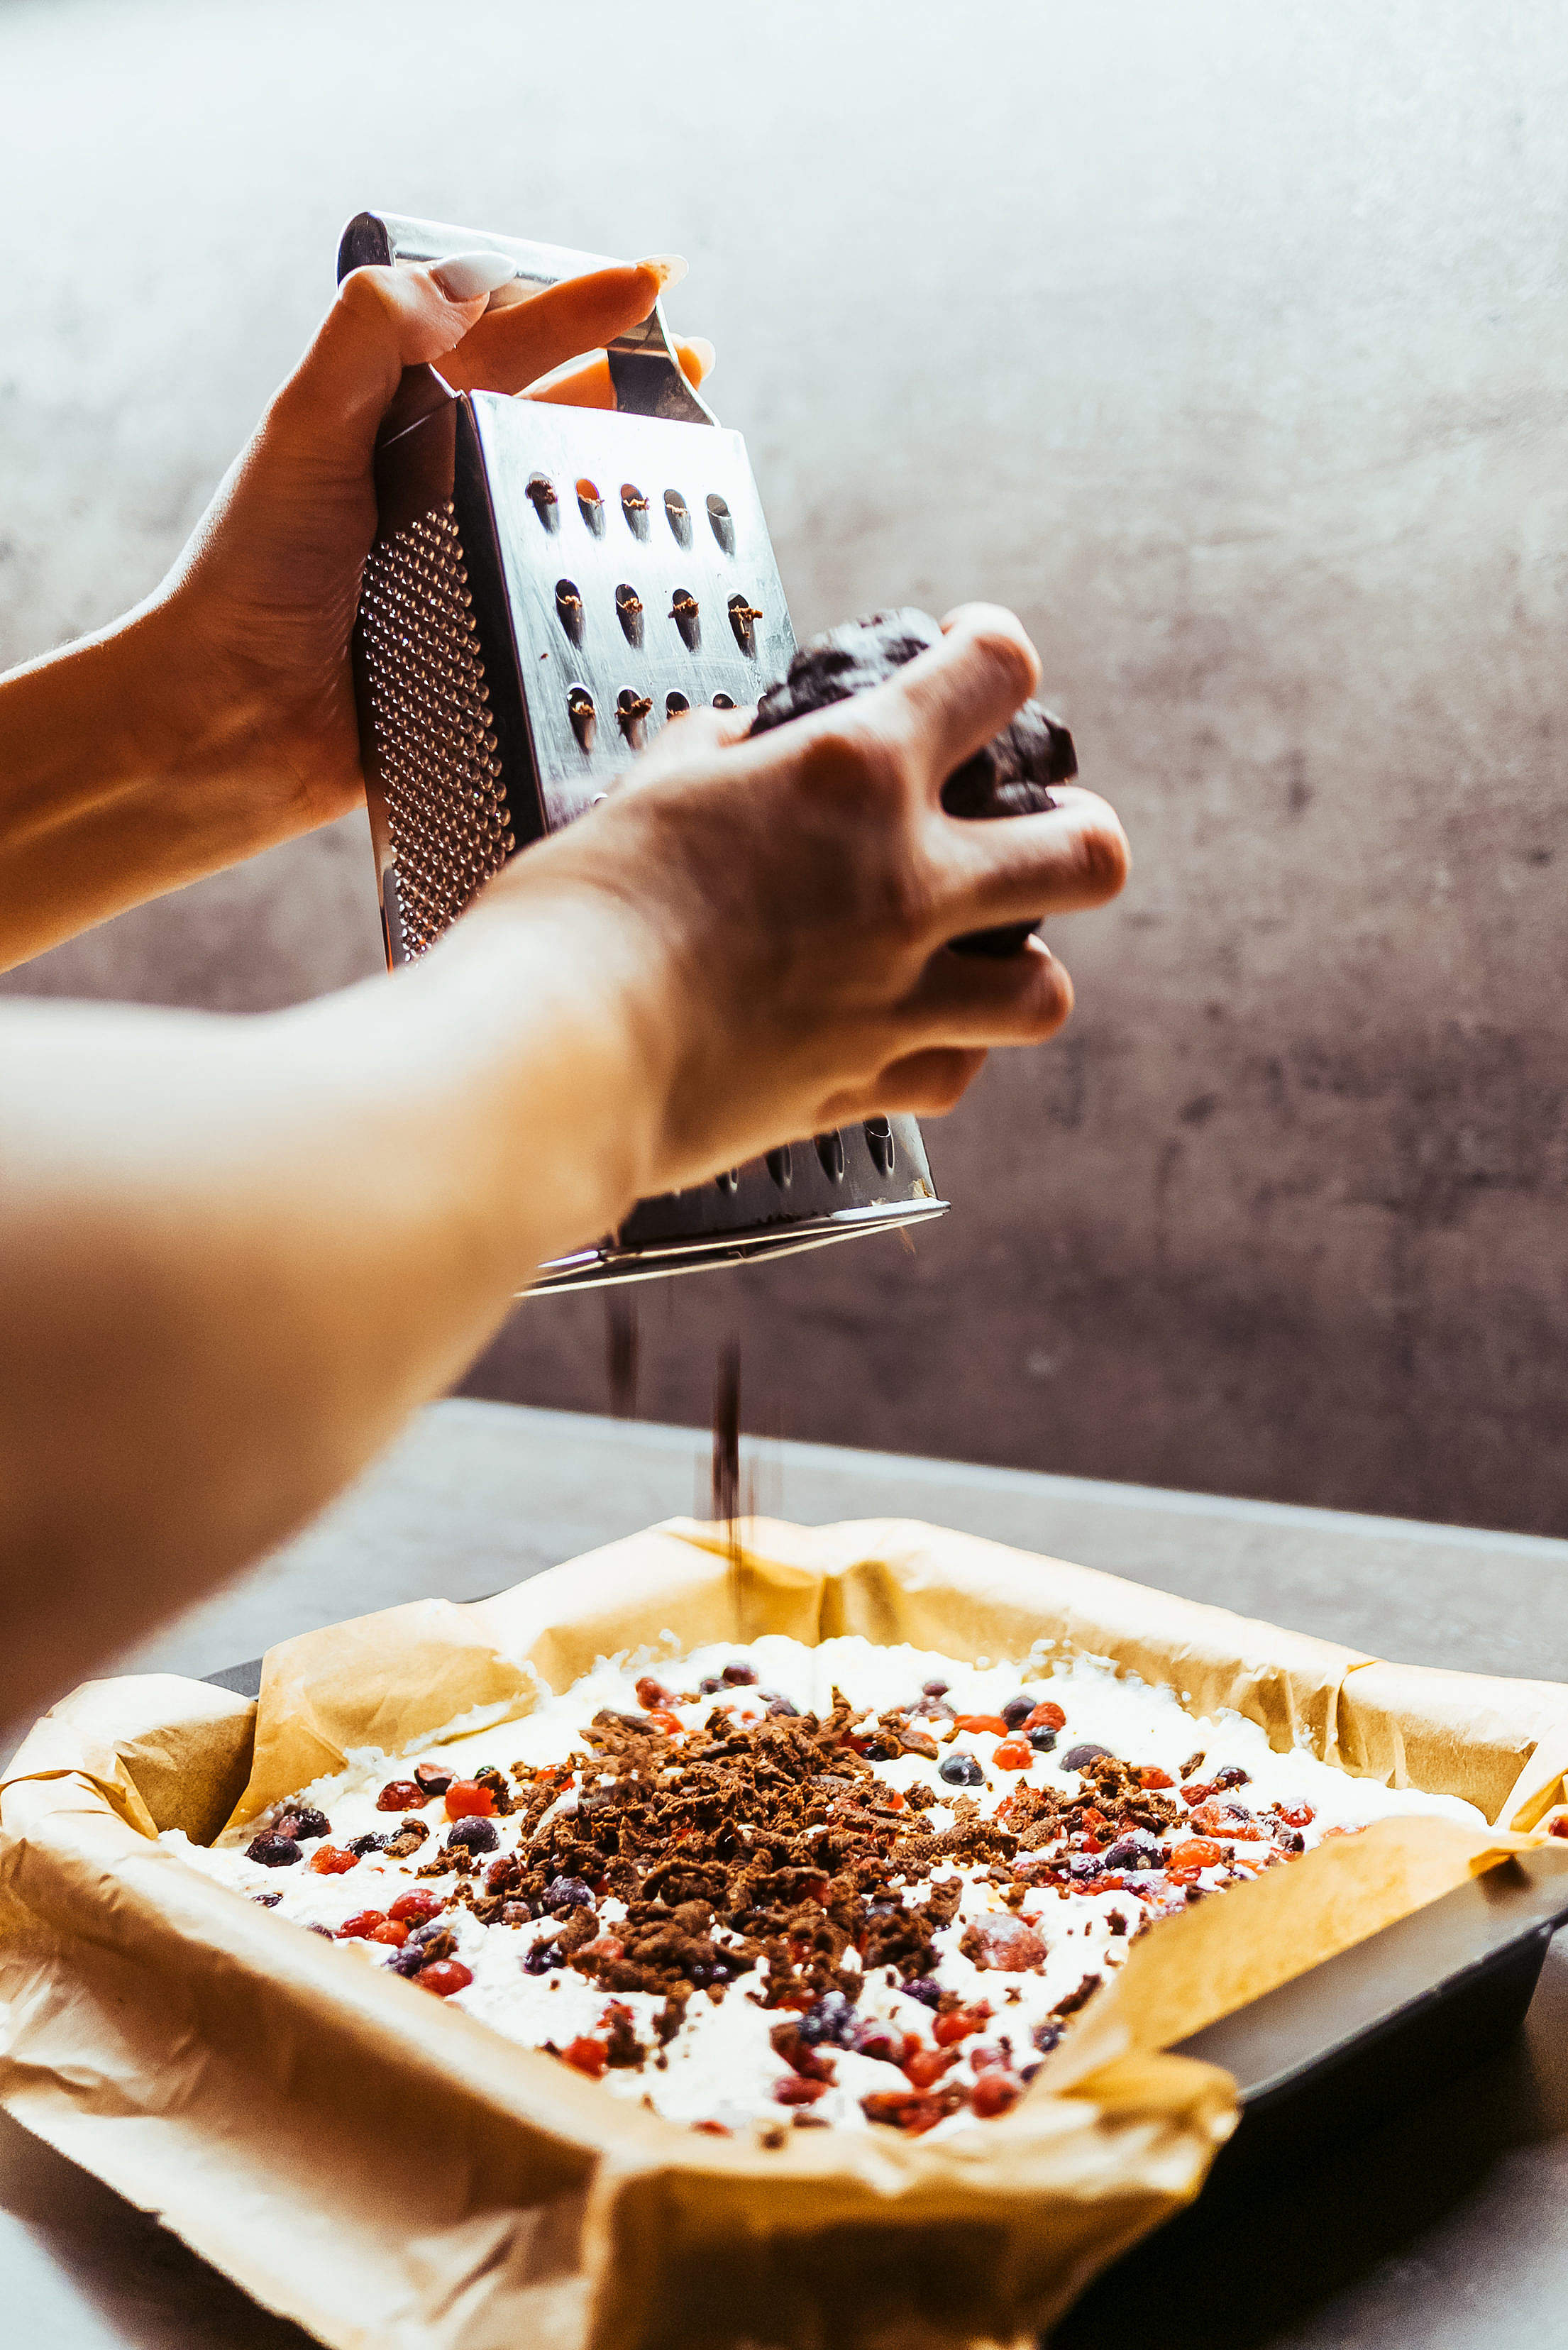 Woman Grating Chocolate on a Cake Free Stock Photo